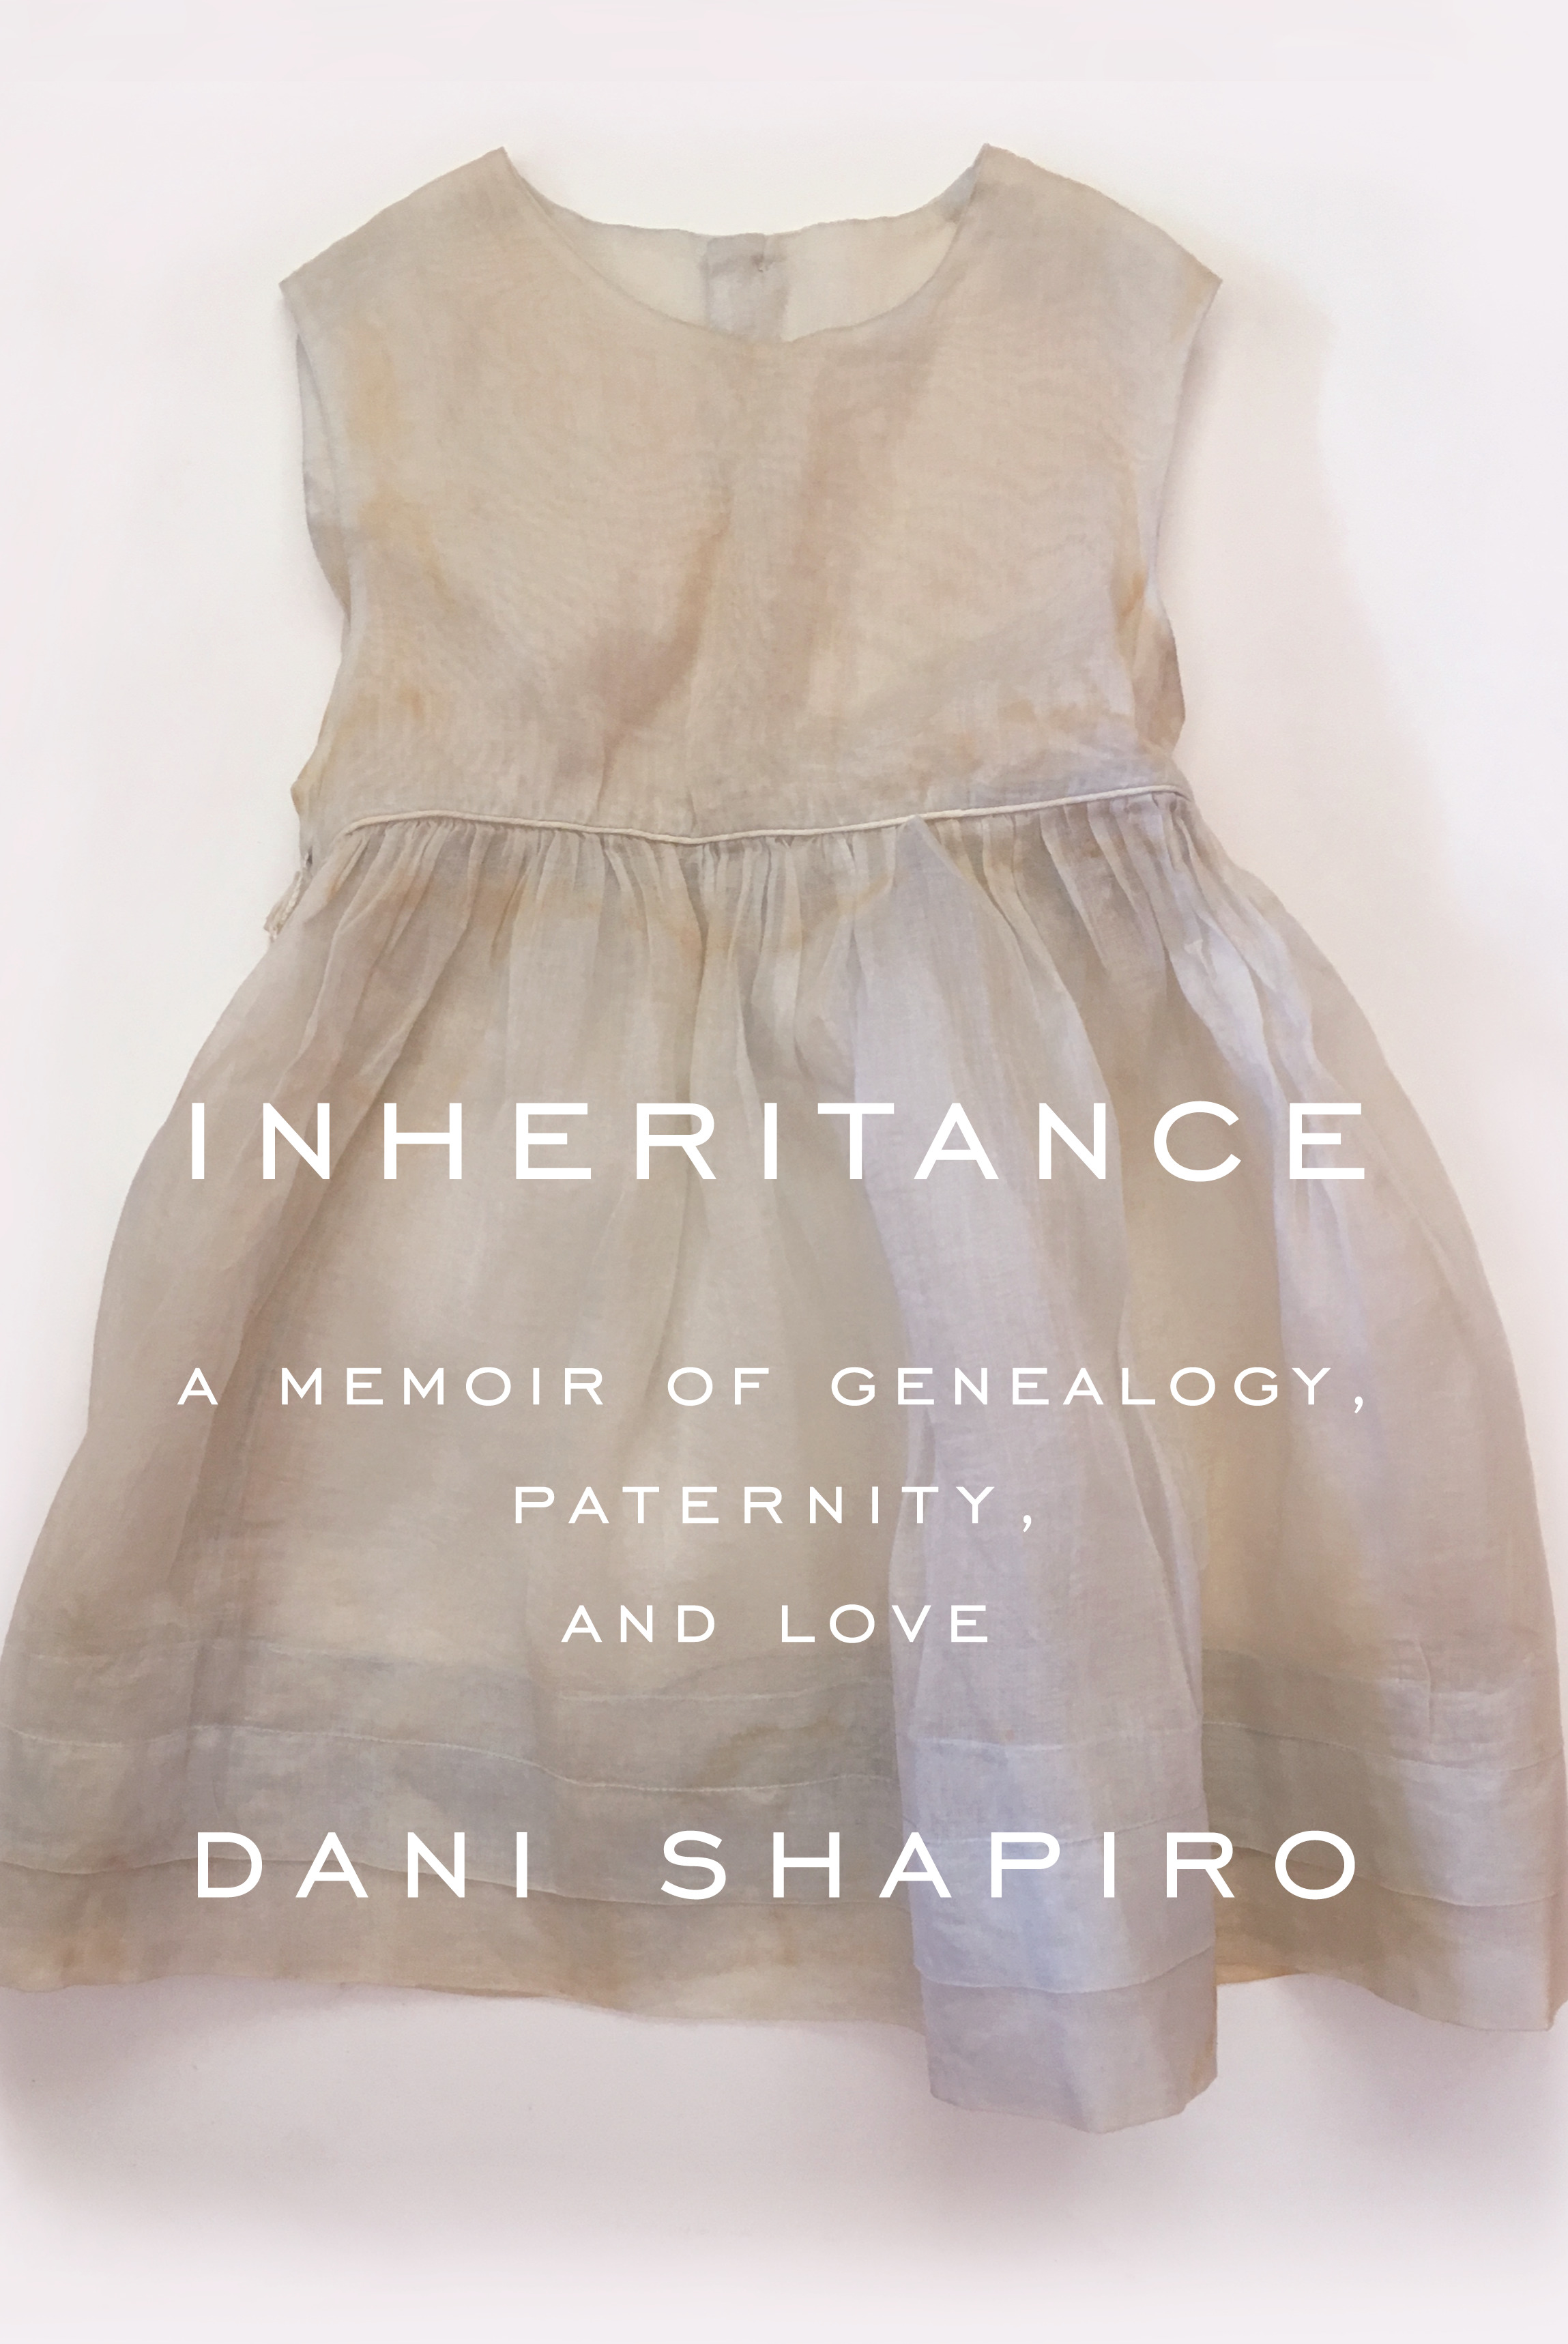 Book Talk and Signing with Dani Shapiro in Conversation with Nora McInerny -SOLD OUT